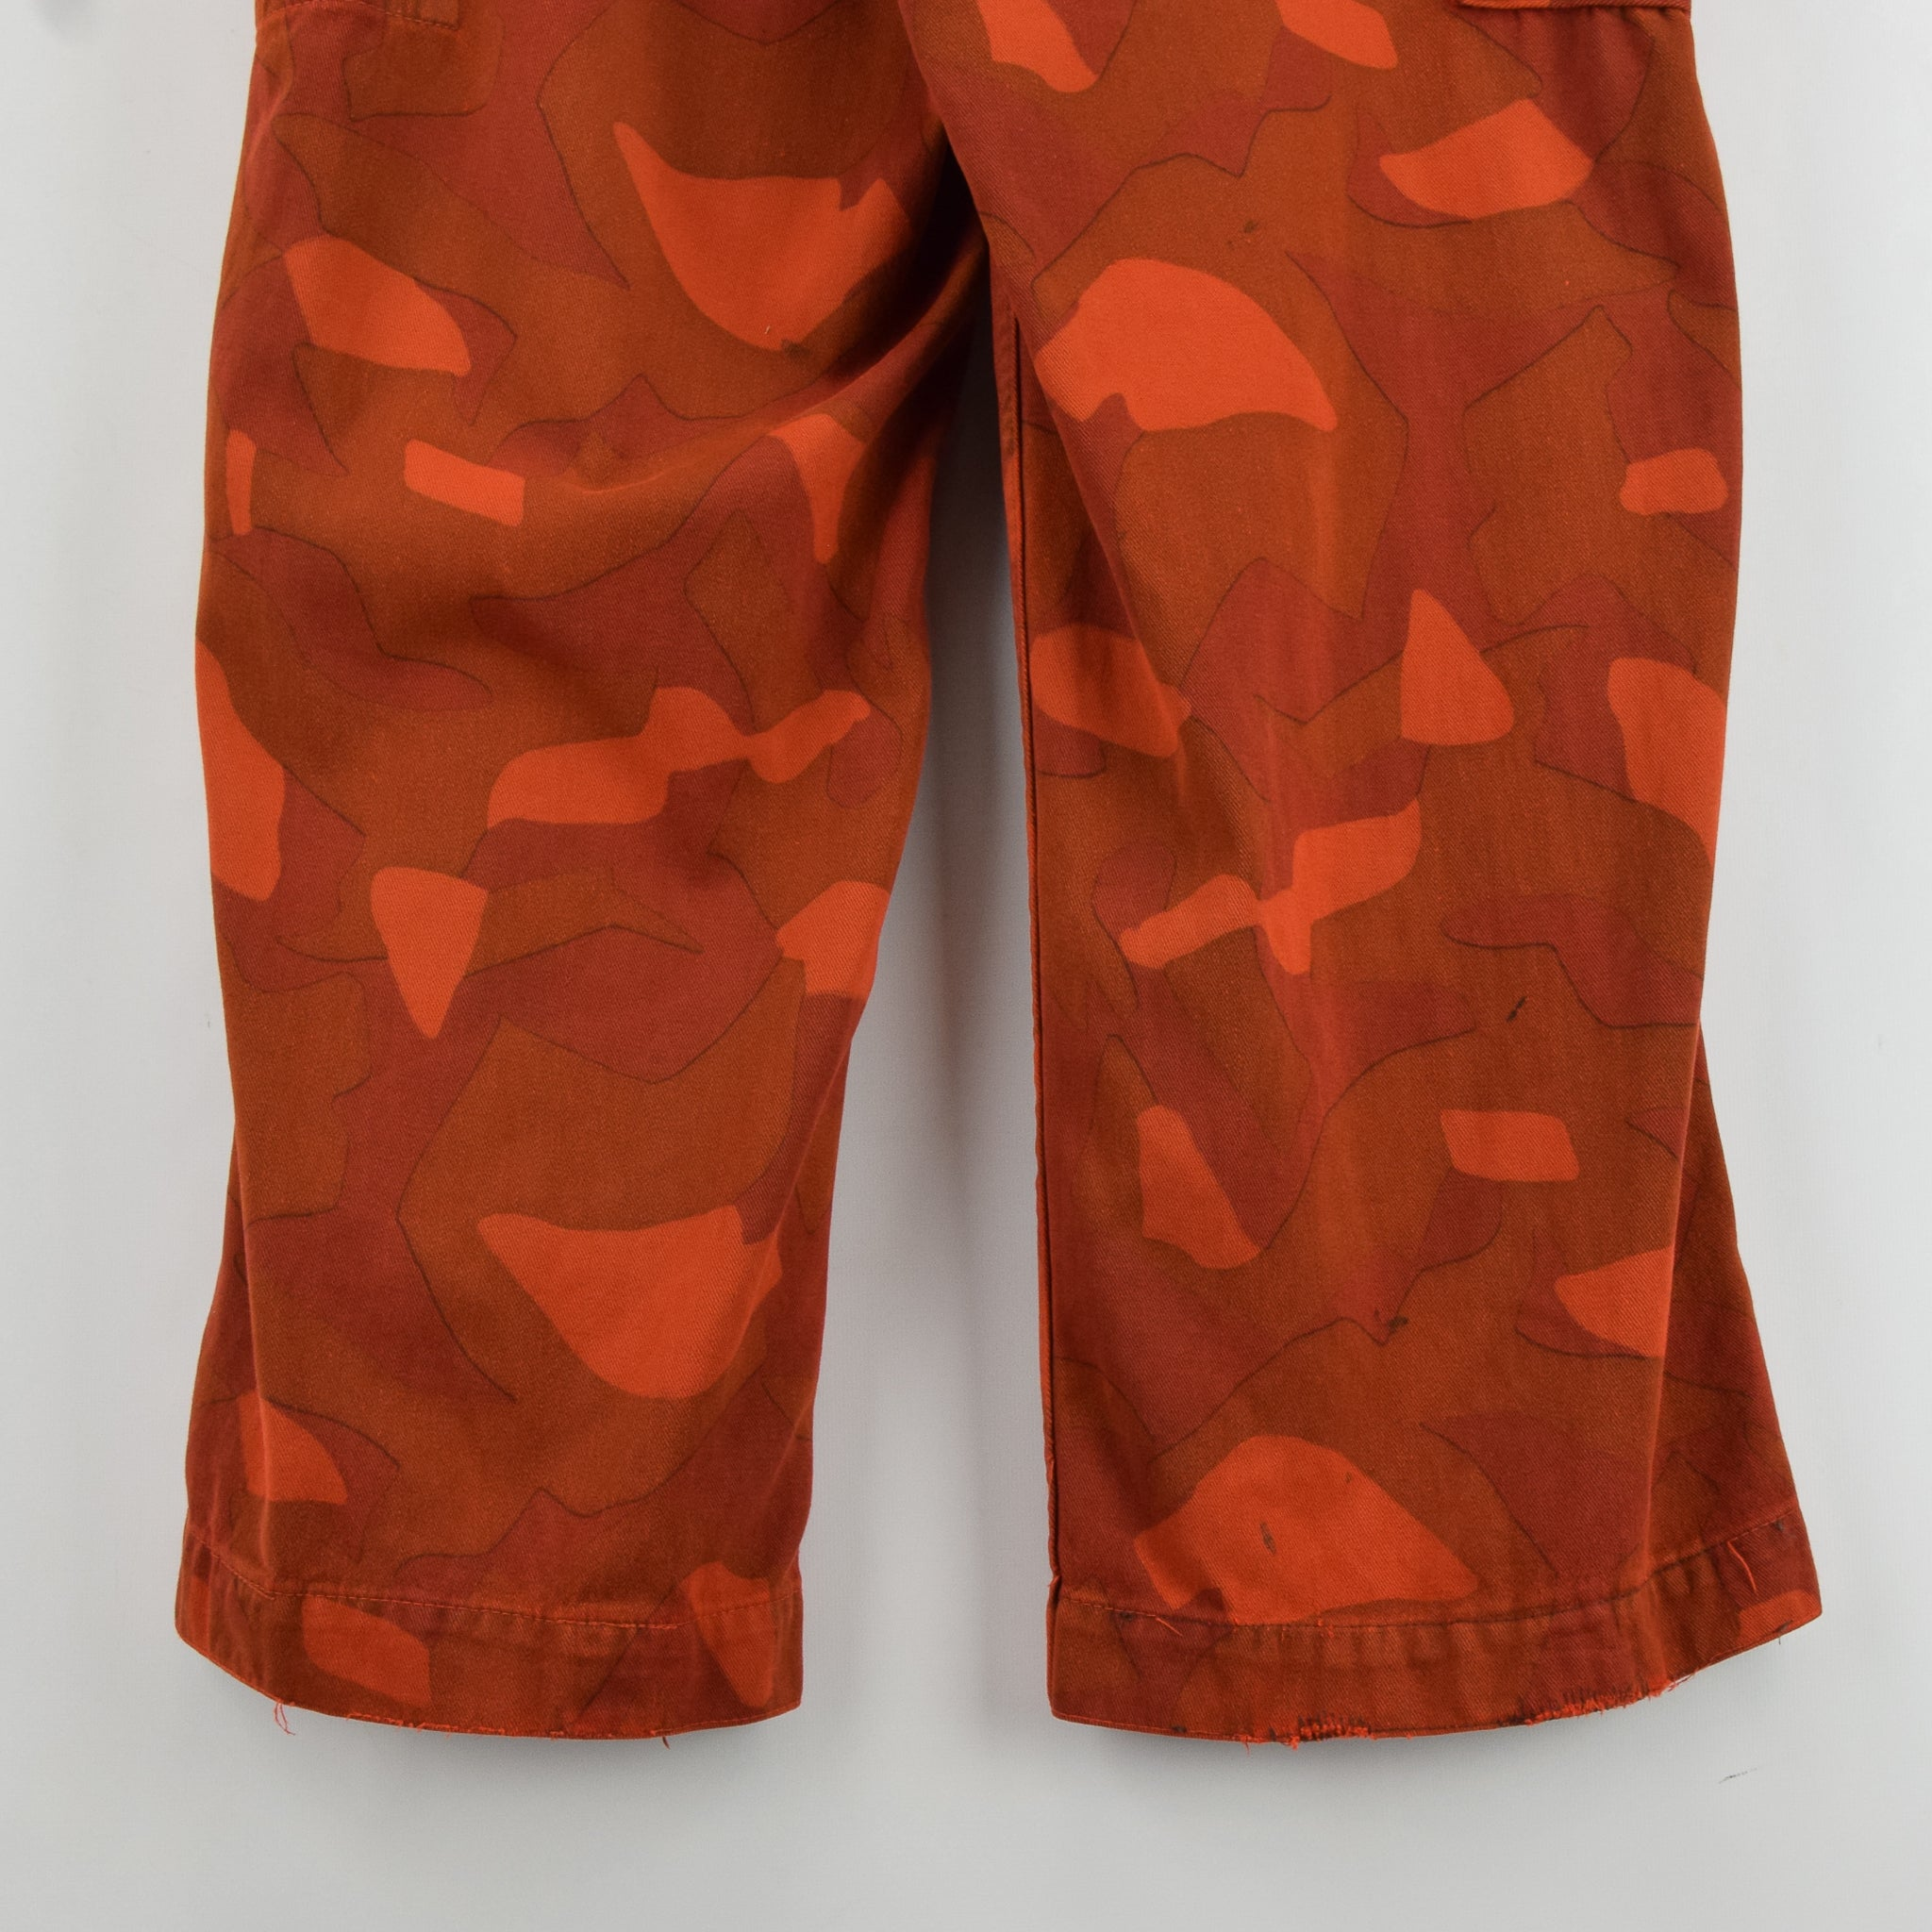 Vintage Military Finnish Army Orange Overdyed Camo Mountain Trousers 34-36 W back hem